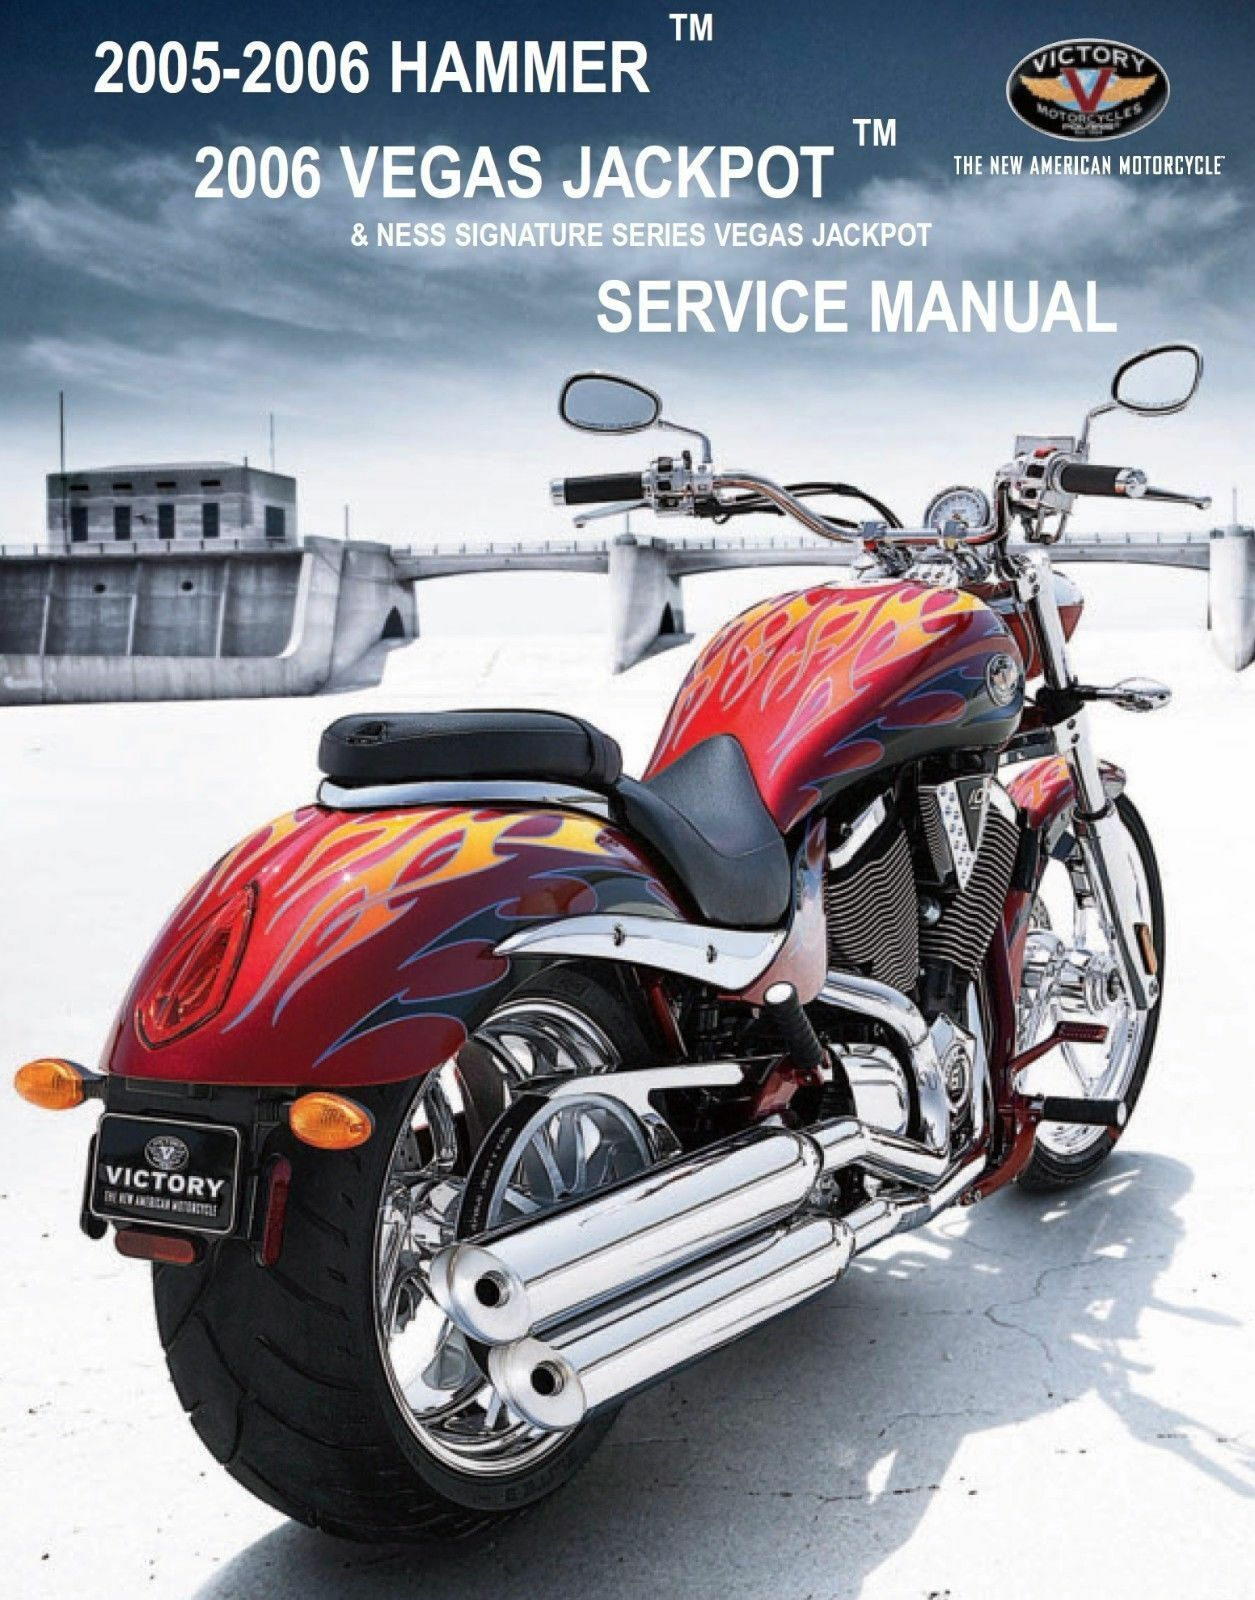 Victory 2005 2006 Hammer & Vegas Jackpot service manual on CD 1 of 2FREE  Shipping ...